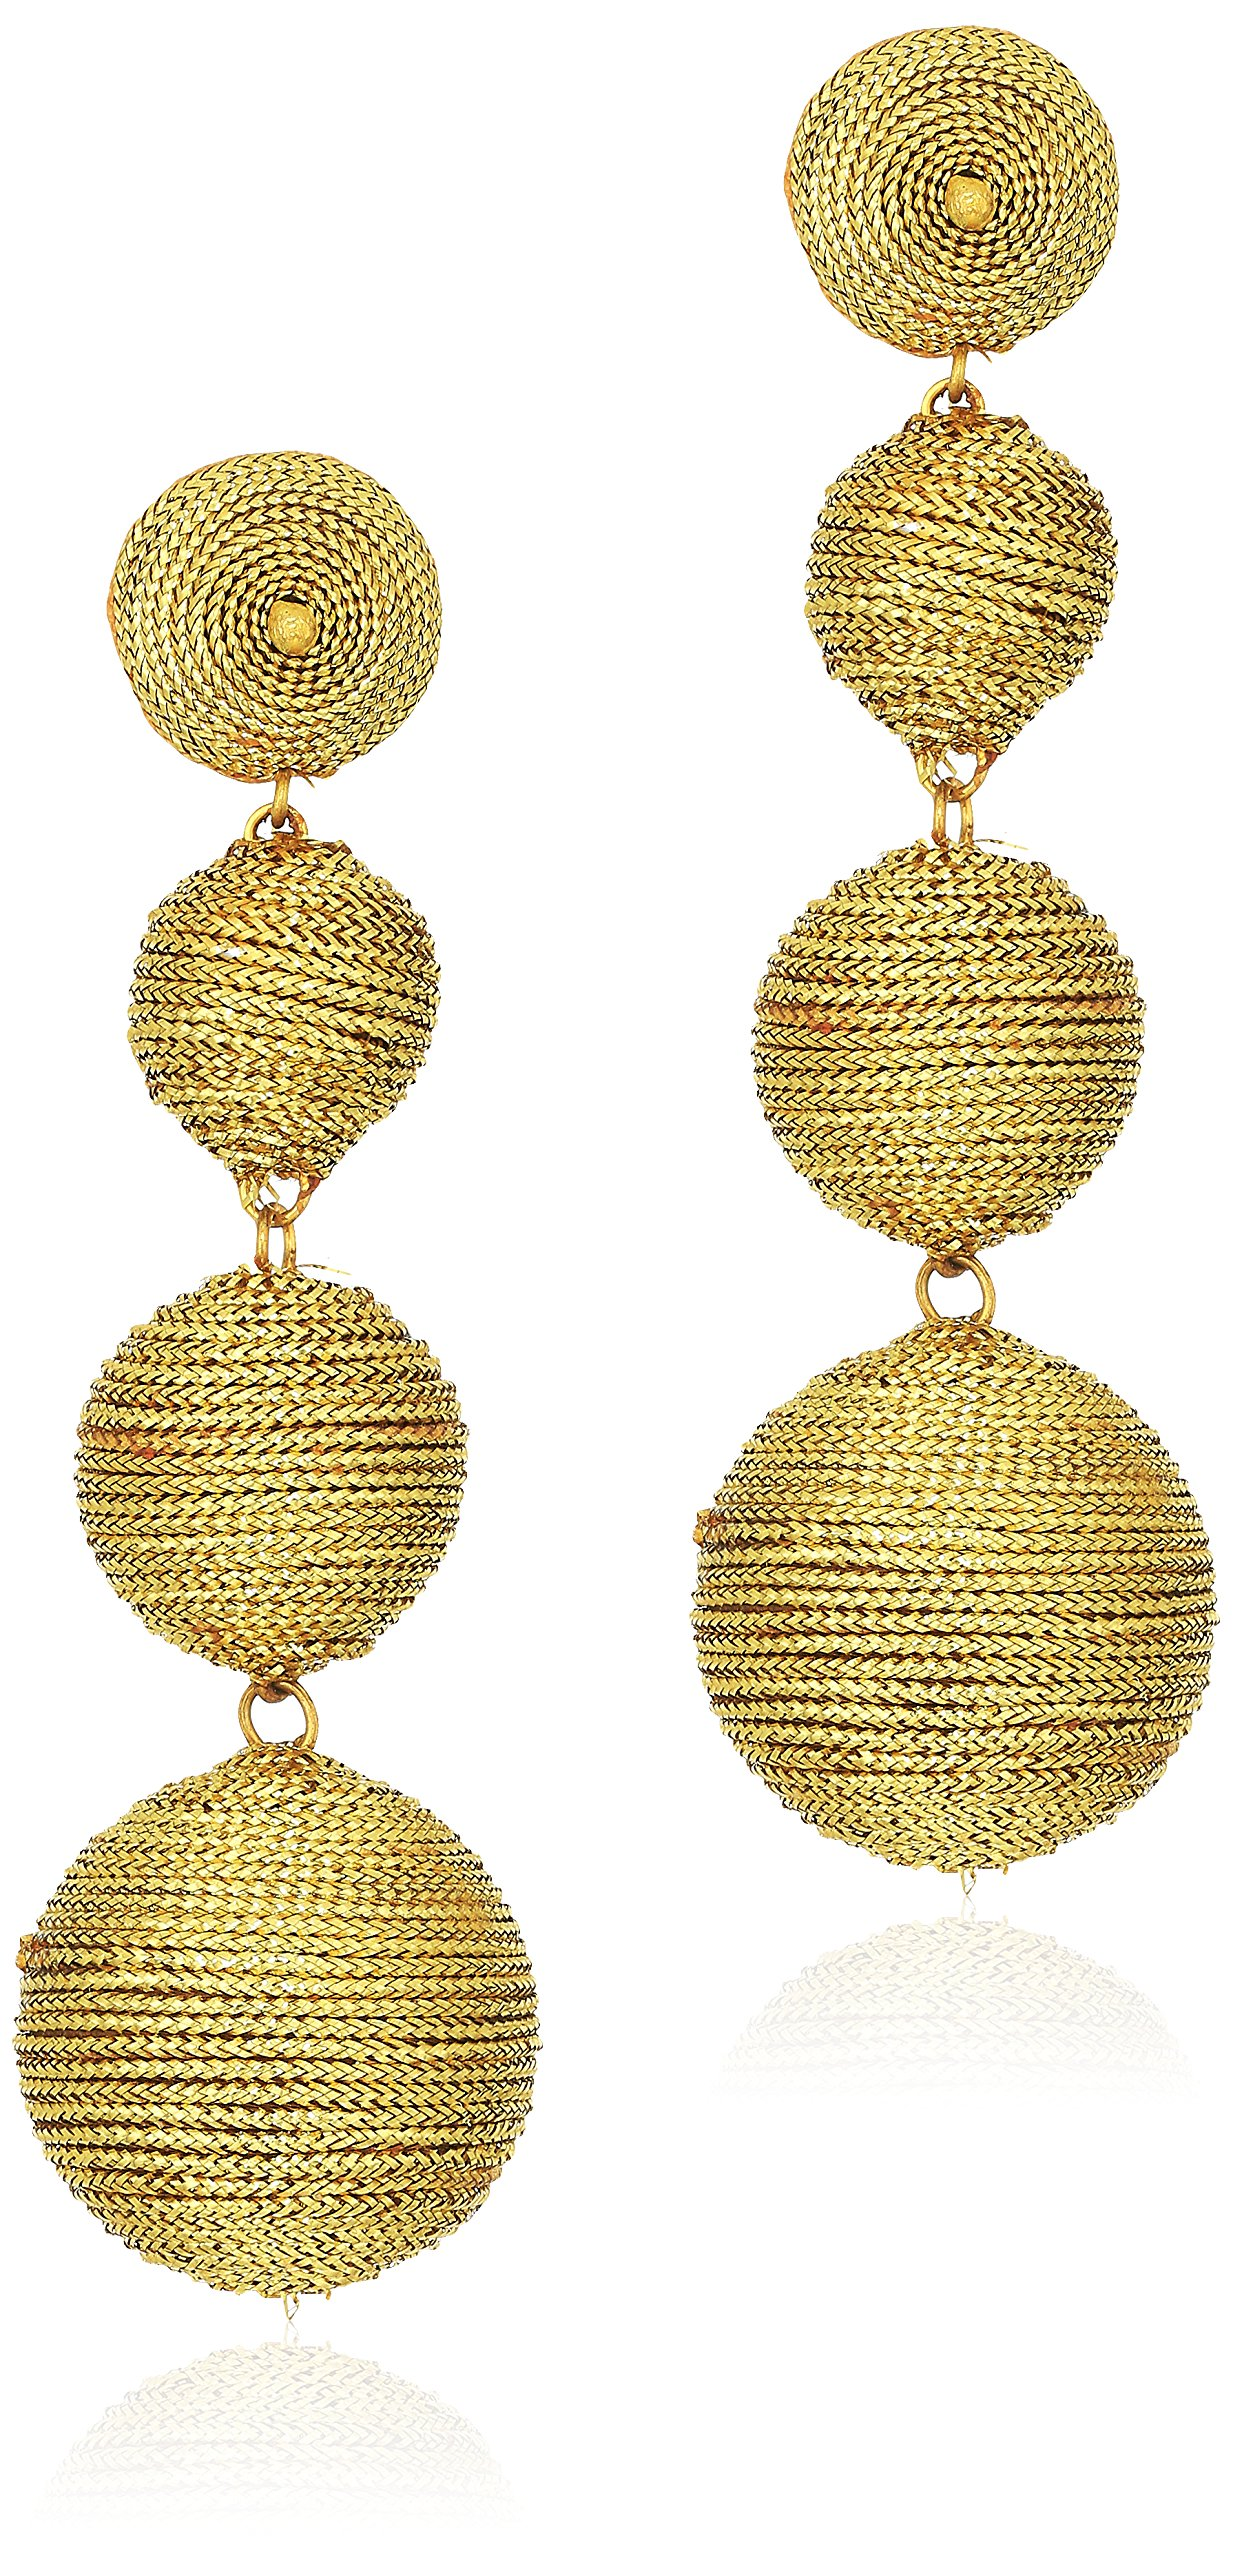 Kenneth Jay Lane Women's Gold Threaded Ball Drop Earrings